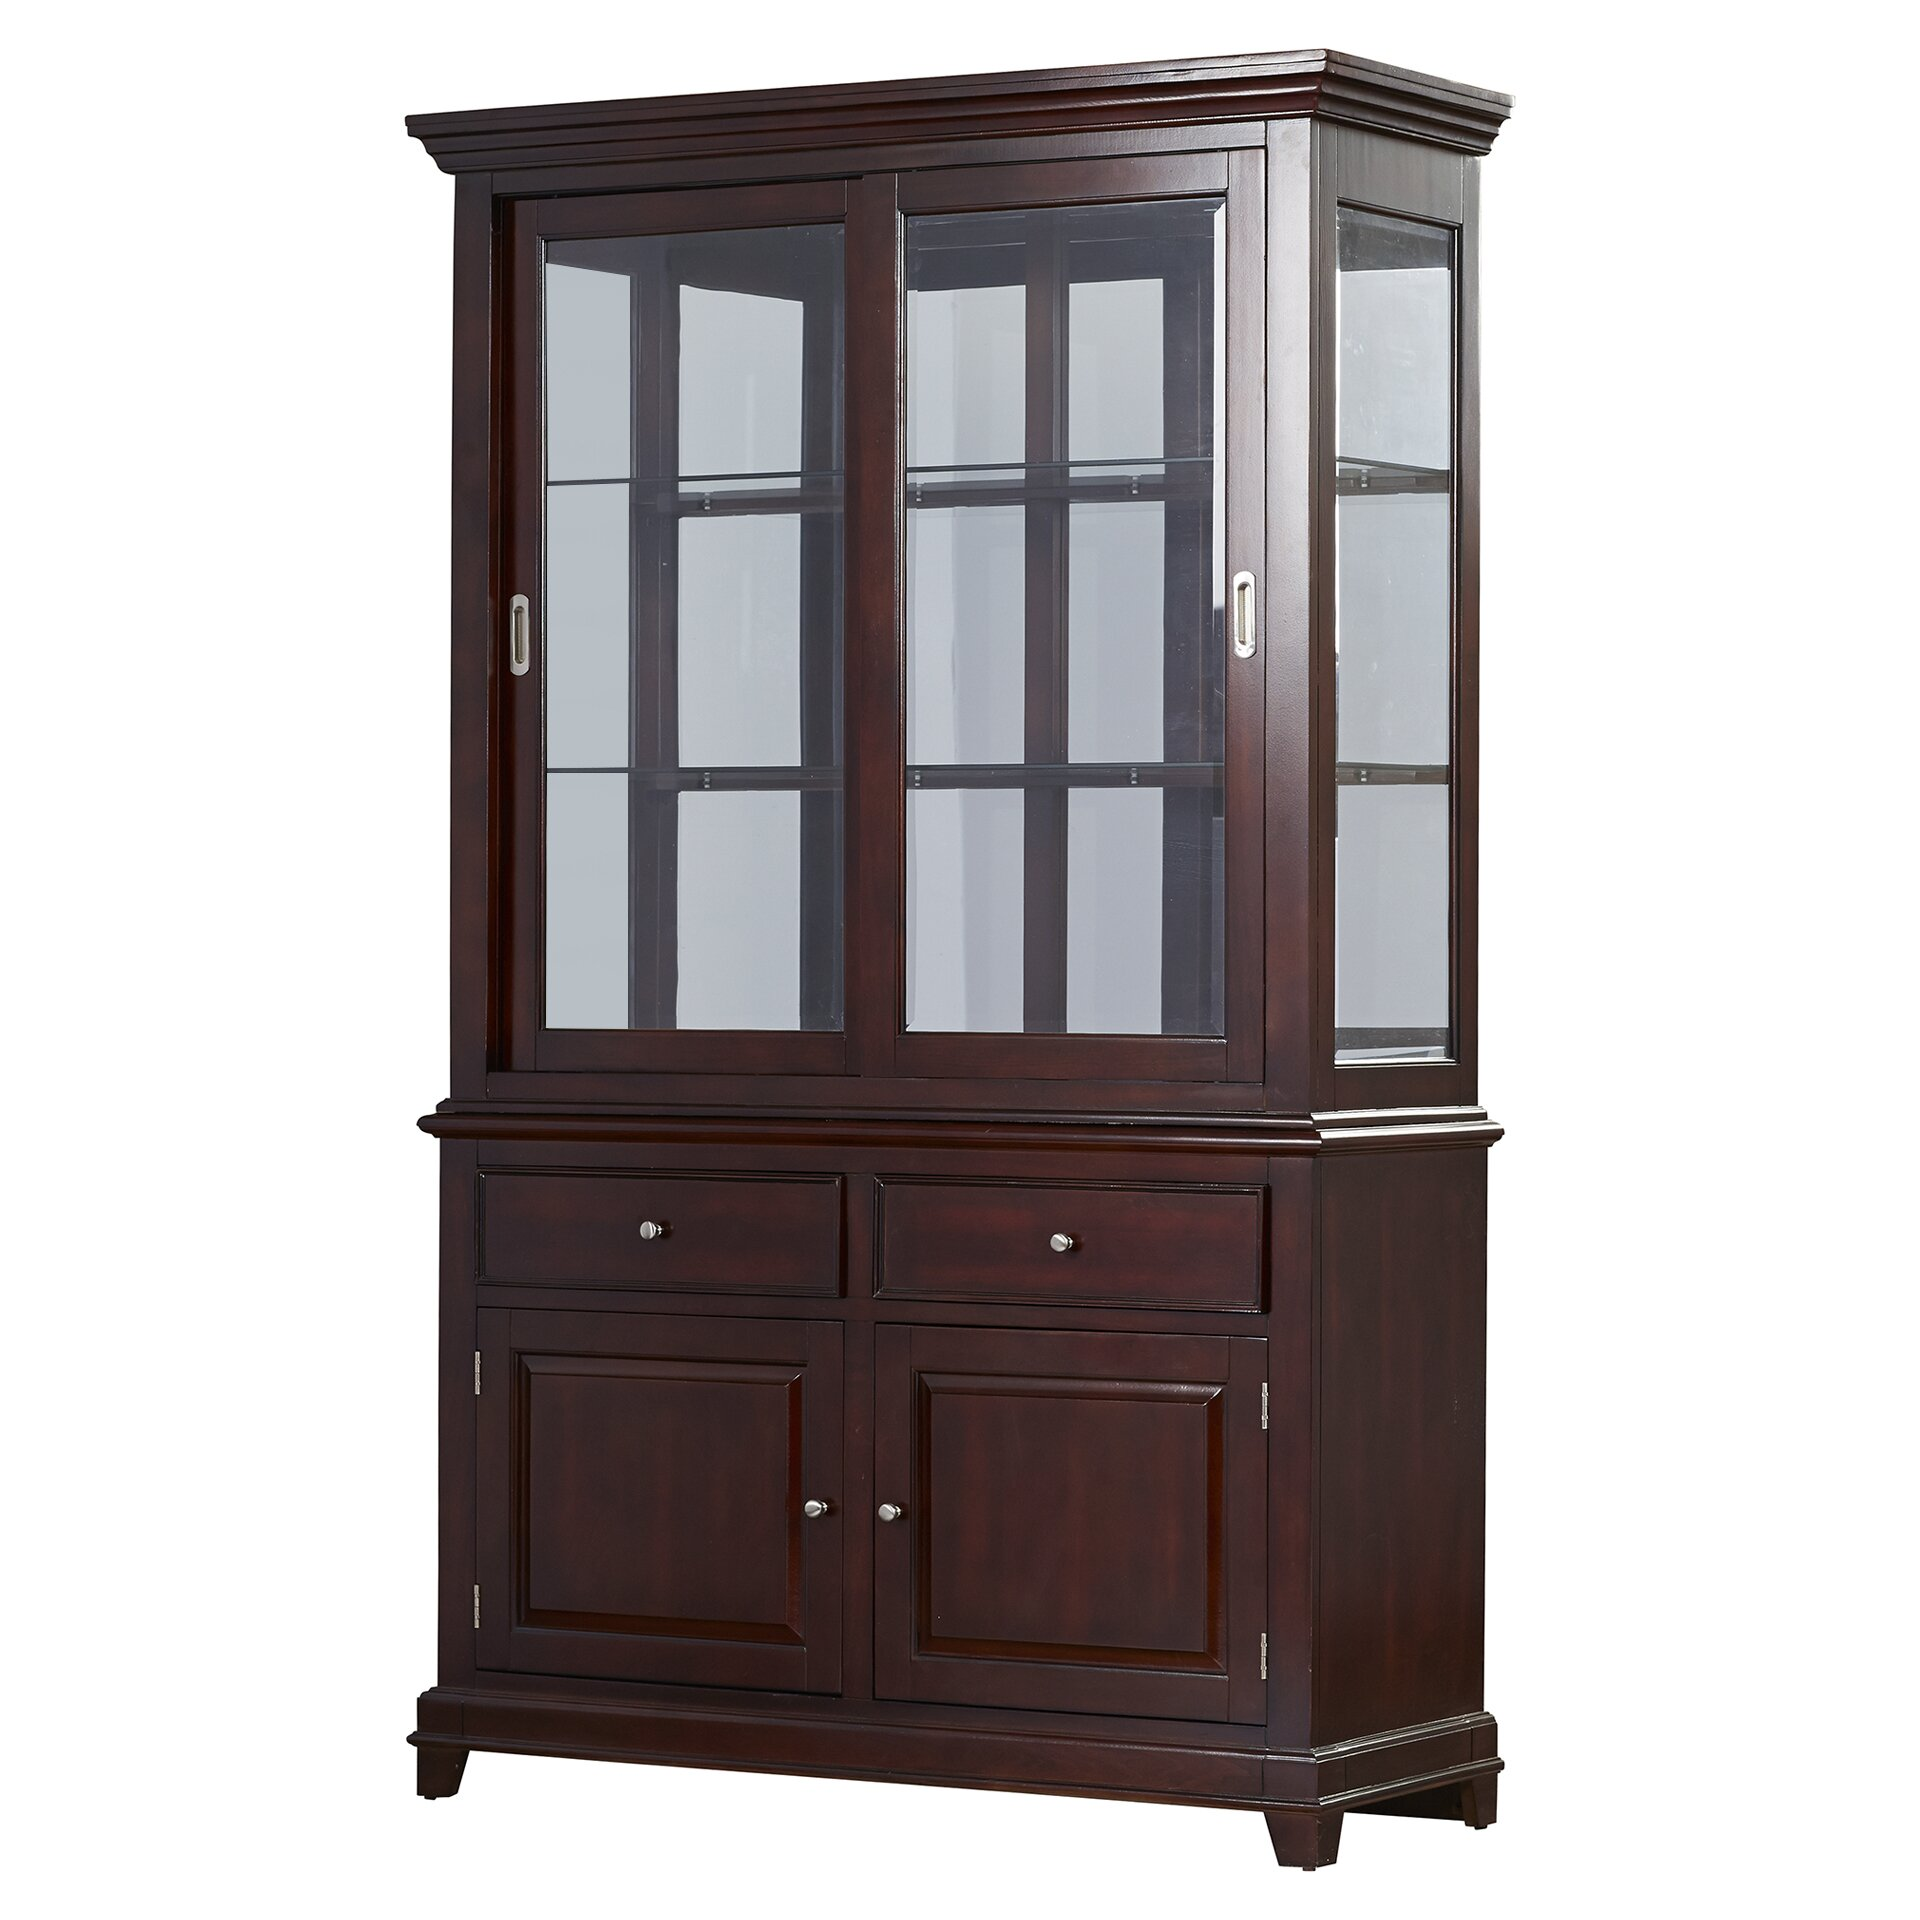 Darby Home Co Flexney China Cabinet Amp Reviews Wayfair